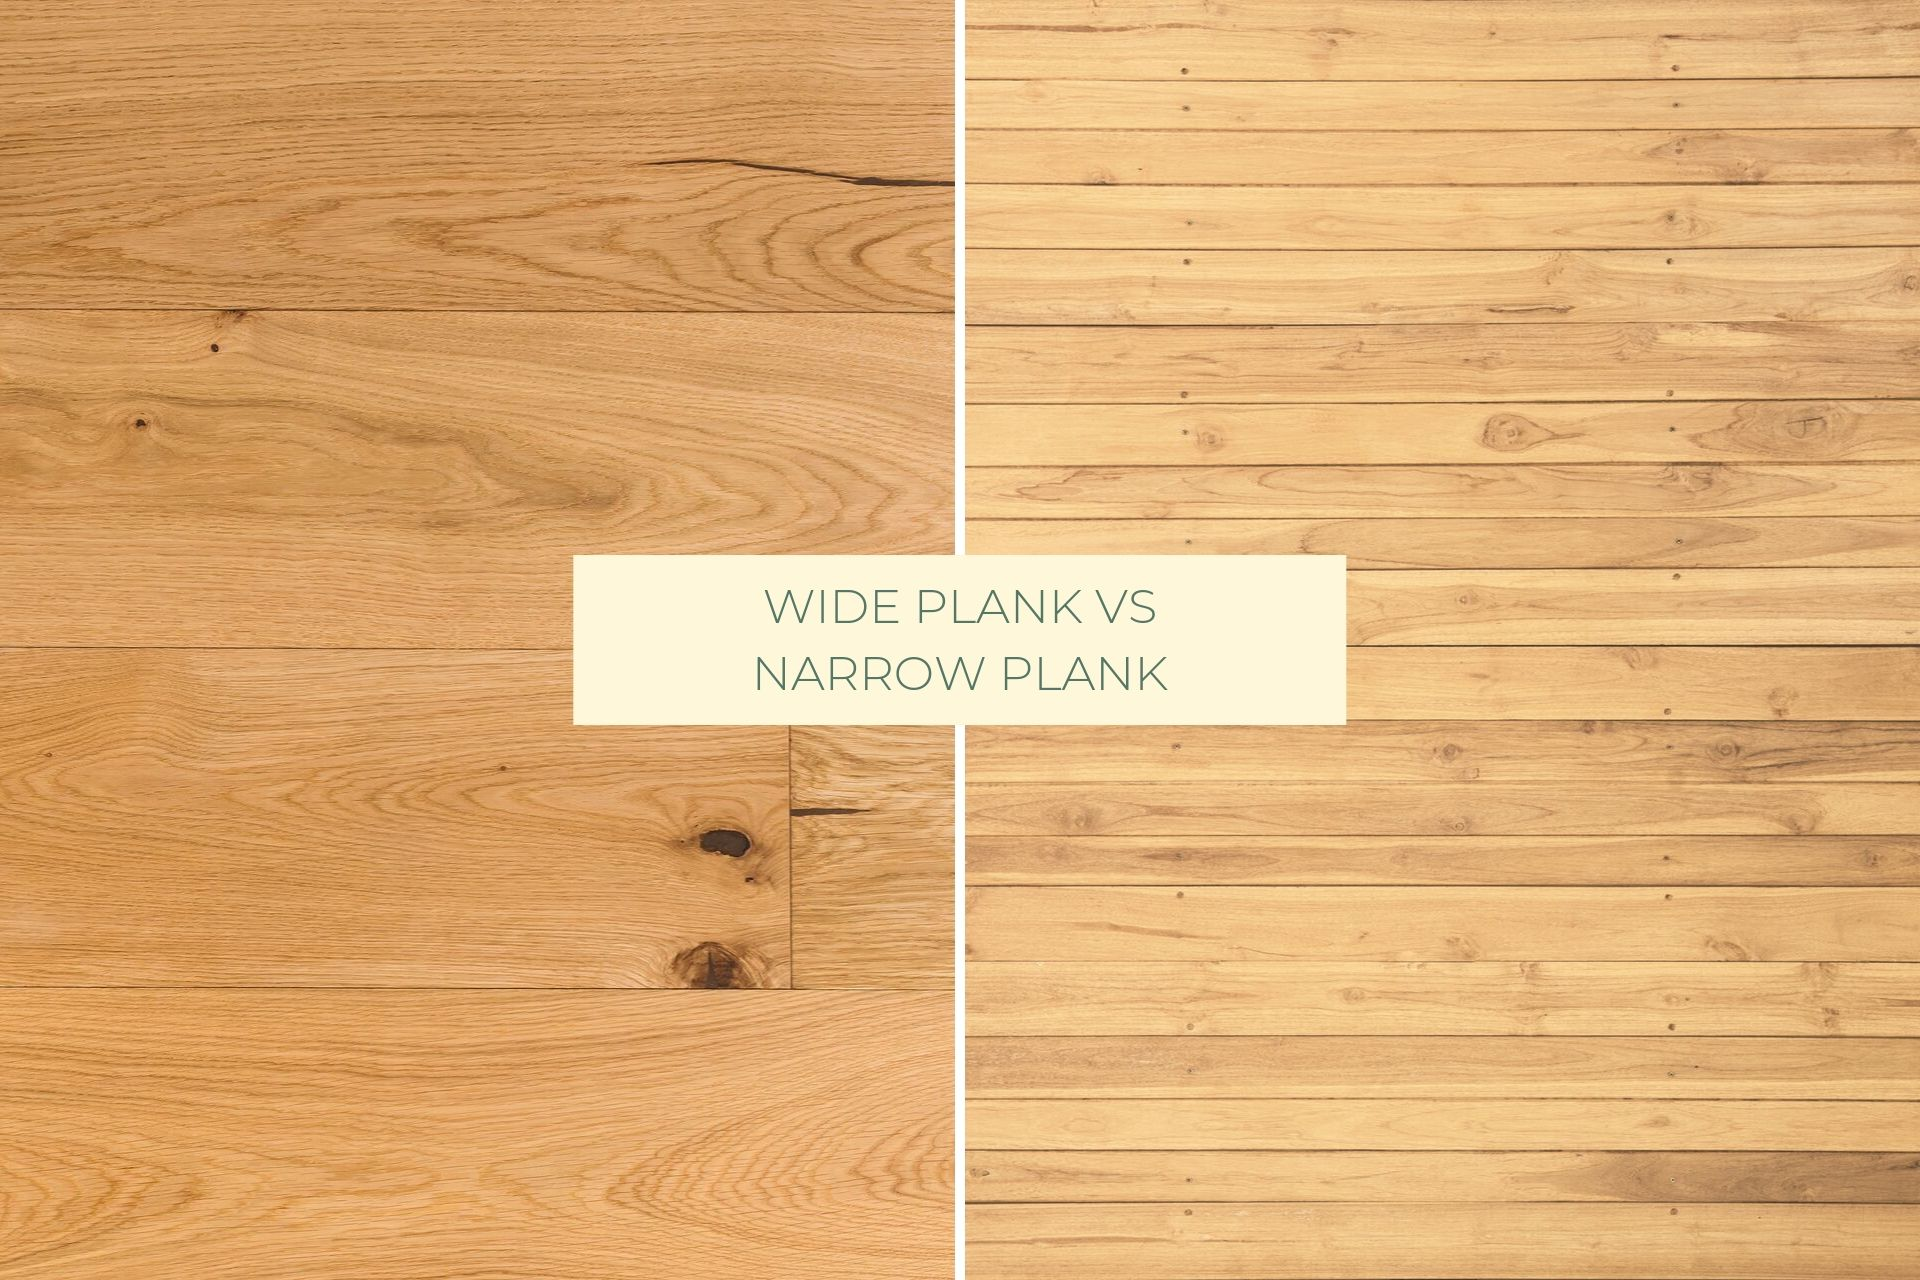 Castle Bespoke_Narrow plank vs wide plank